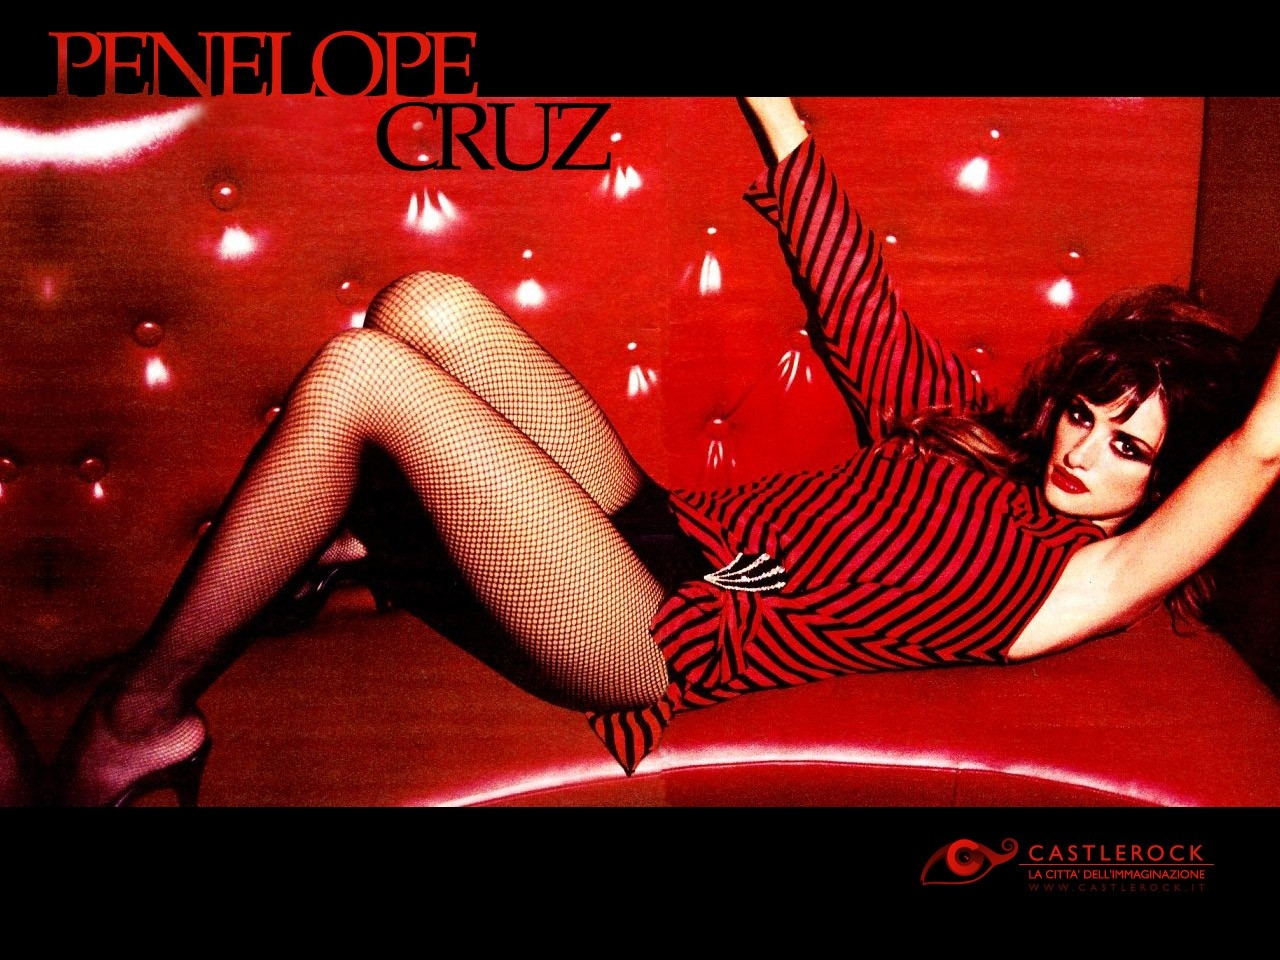 Wallpaper supersexy di Penelope Cruz